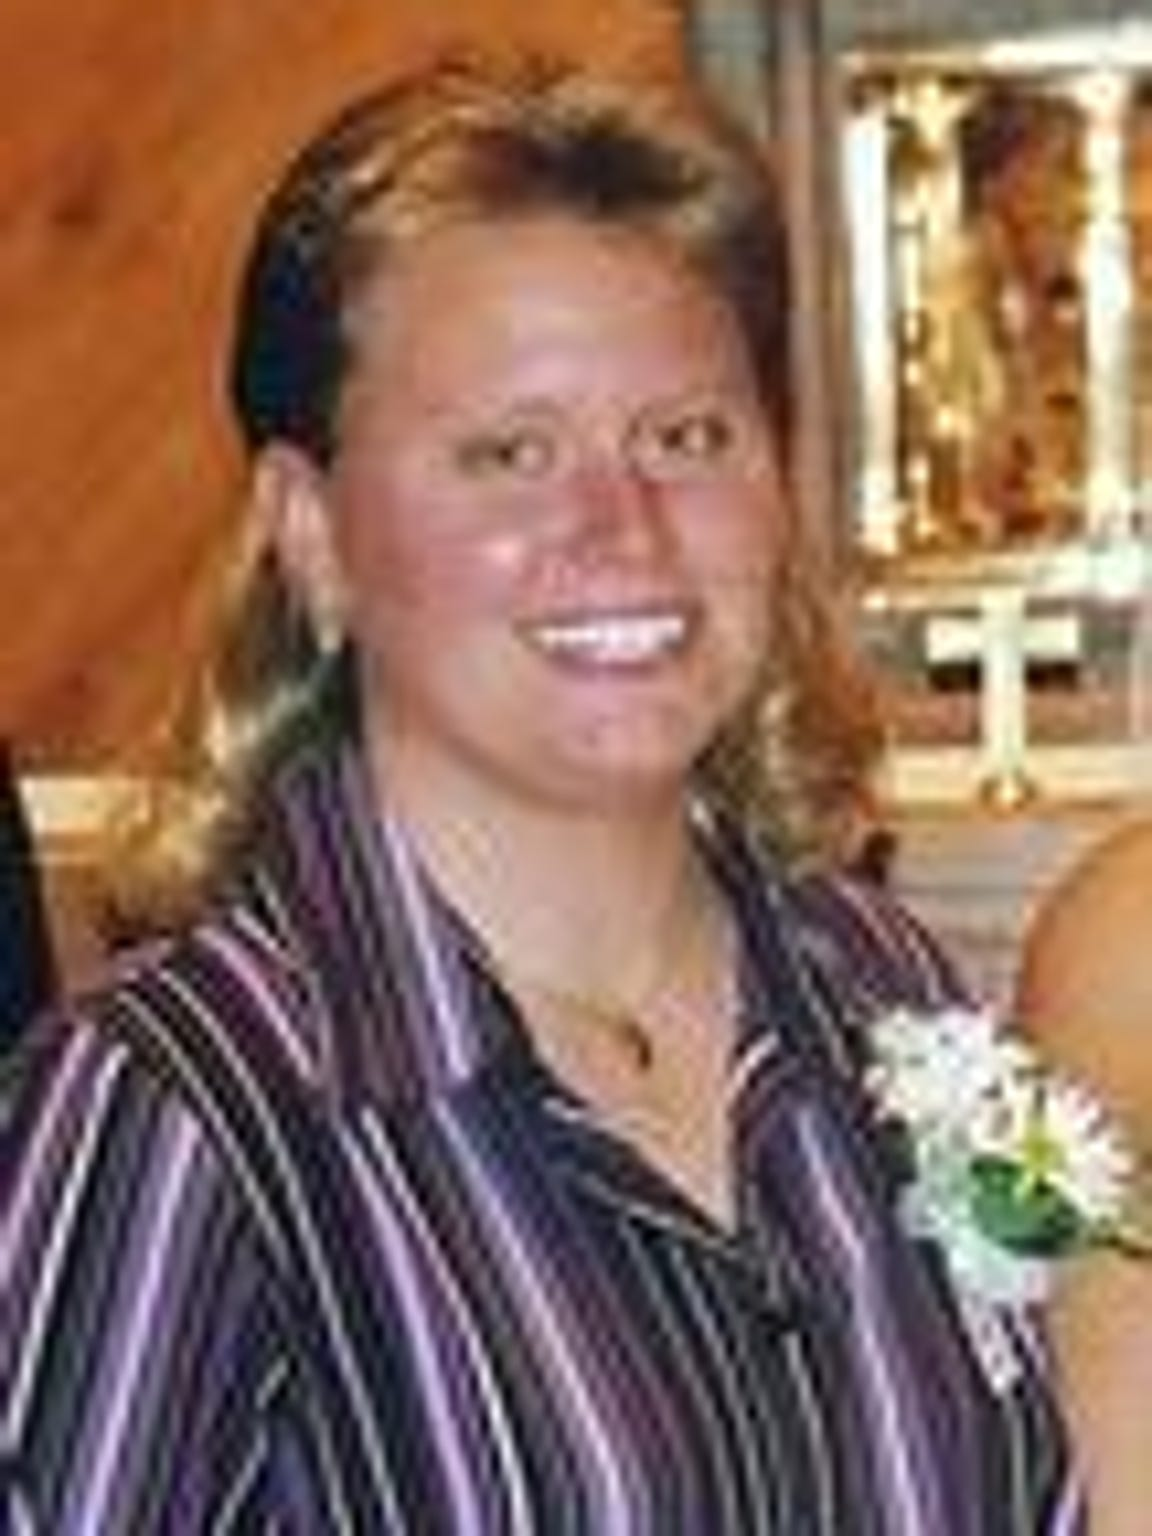 Lara Plamann was 30 years old when she was murdered in a pole barn on her property in Greenville. Nobody has been convicted in her Oct. 17, 2007 killing.